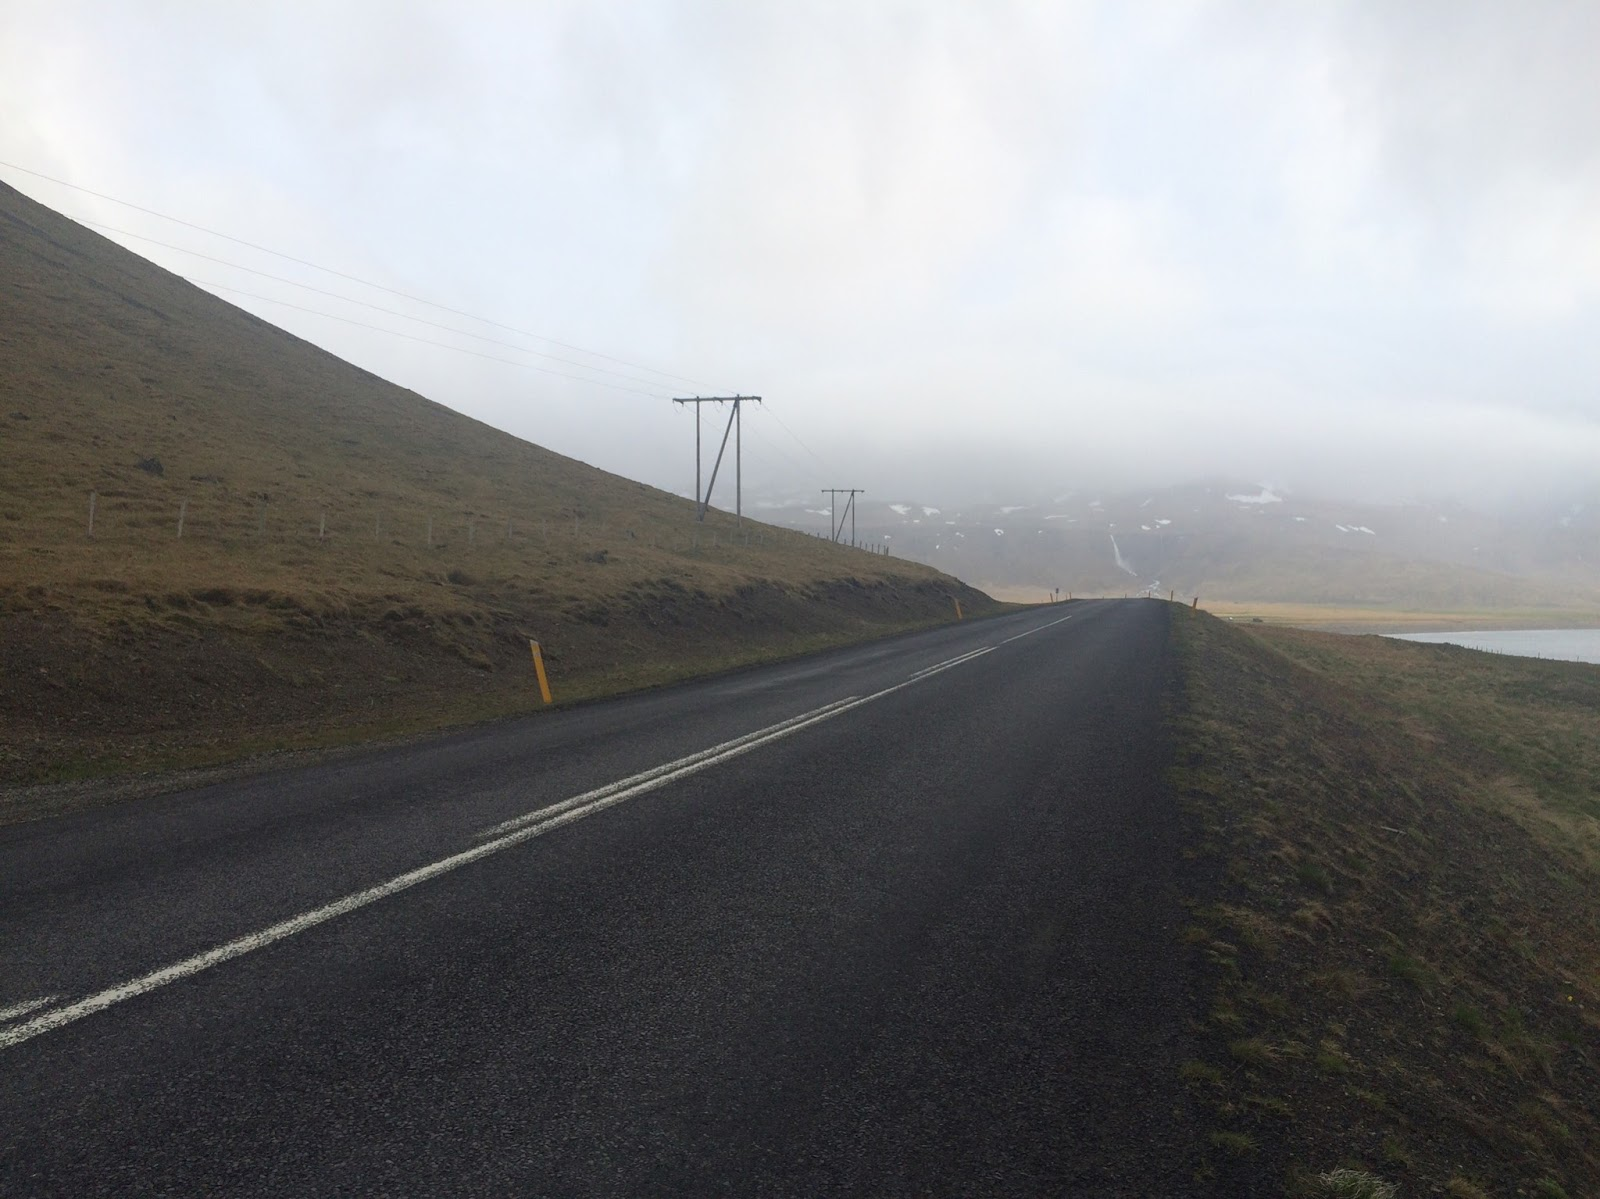 On the road on a cloudy day in Iceland